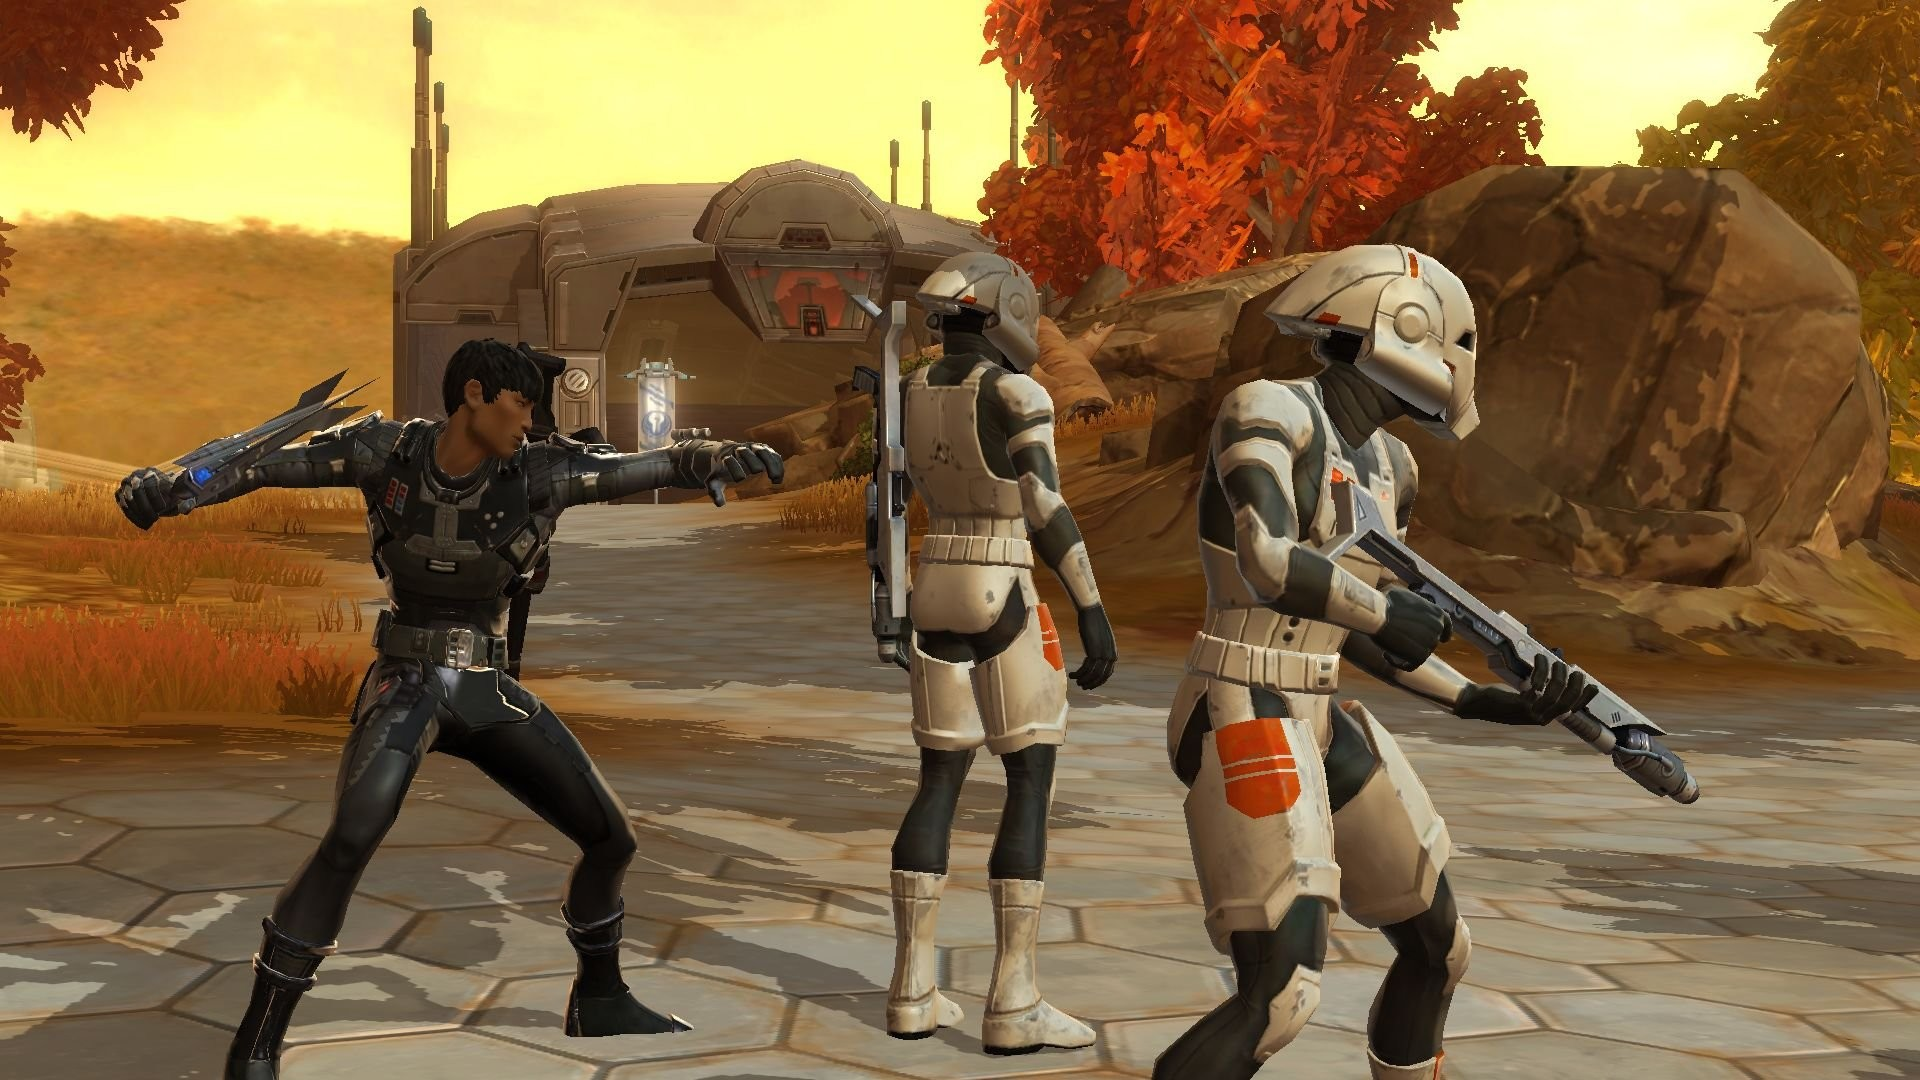 STAR WARS OLD REPUBLIC mmo rpg swtor fighting sci-fi wallpaper      518922   WallpaperUP